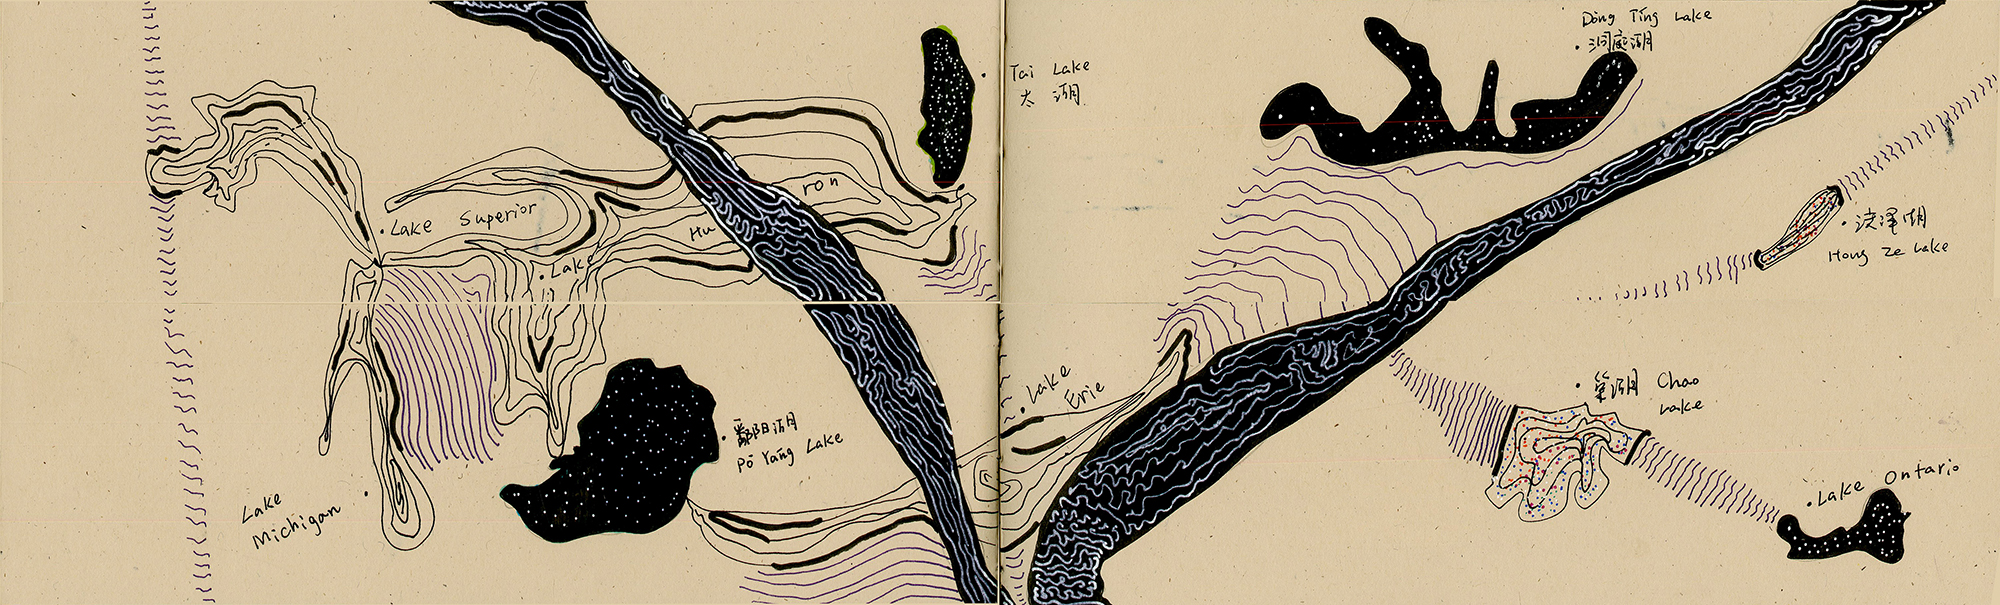 River Book I(Top), River Book II(Bottom), Page 10, Missouri River and Mississippi River